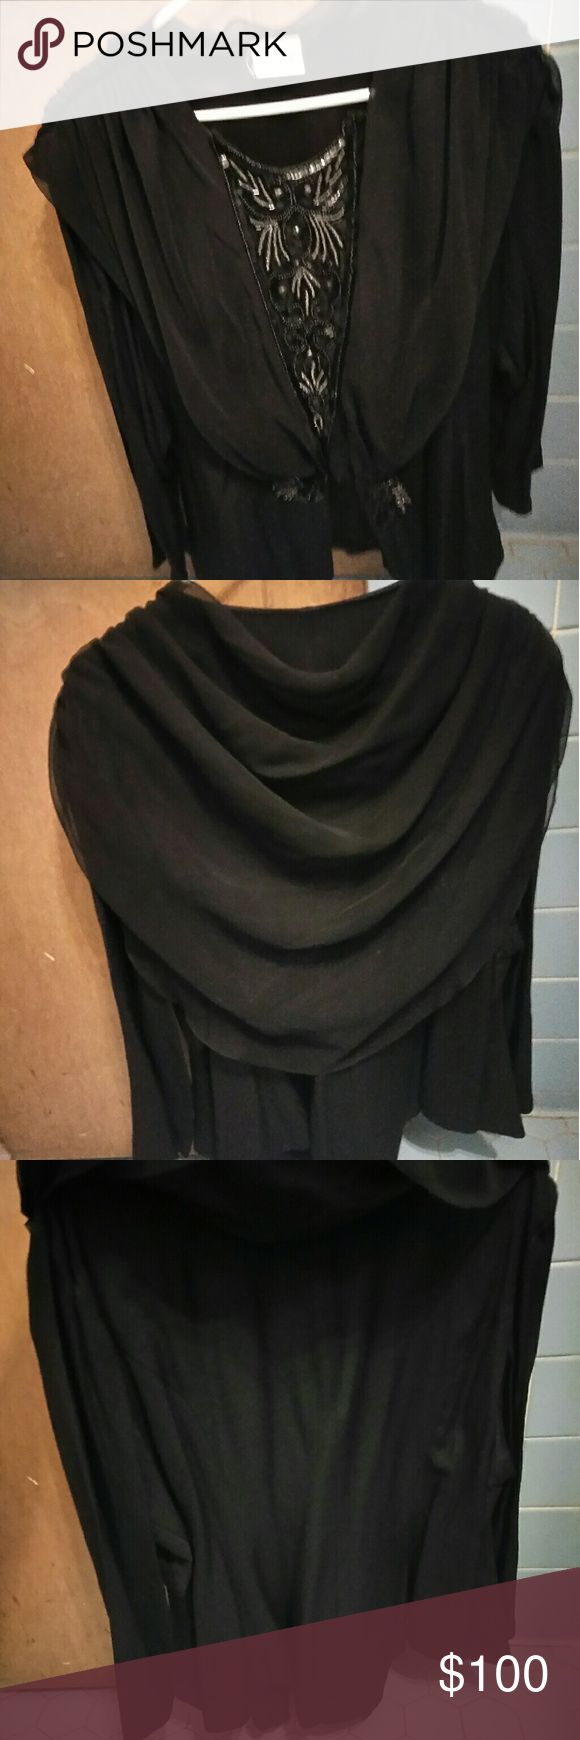 A beautiful ladies evening top Black dressy top or evening jacket. This top or jacket is simply beautiful. Never wore it. Just sitting in my closet. I'm not sure of the size or material. It looks like a large or XL. The beading is beautiful Tops Blouses